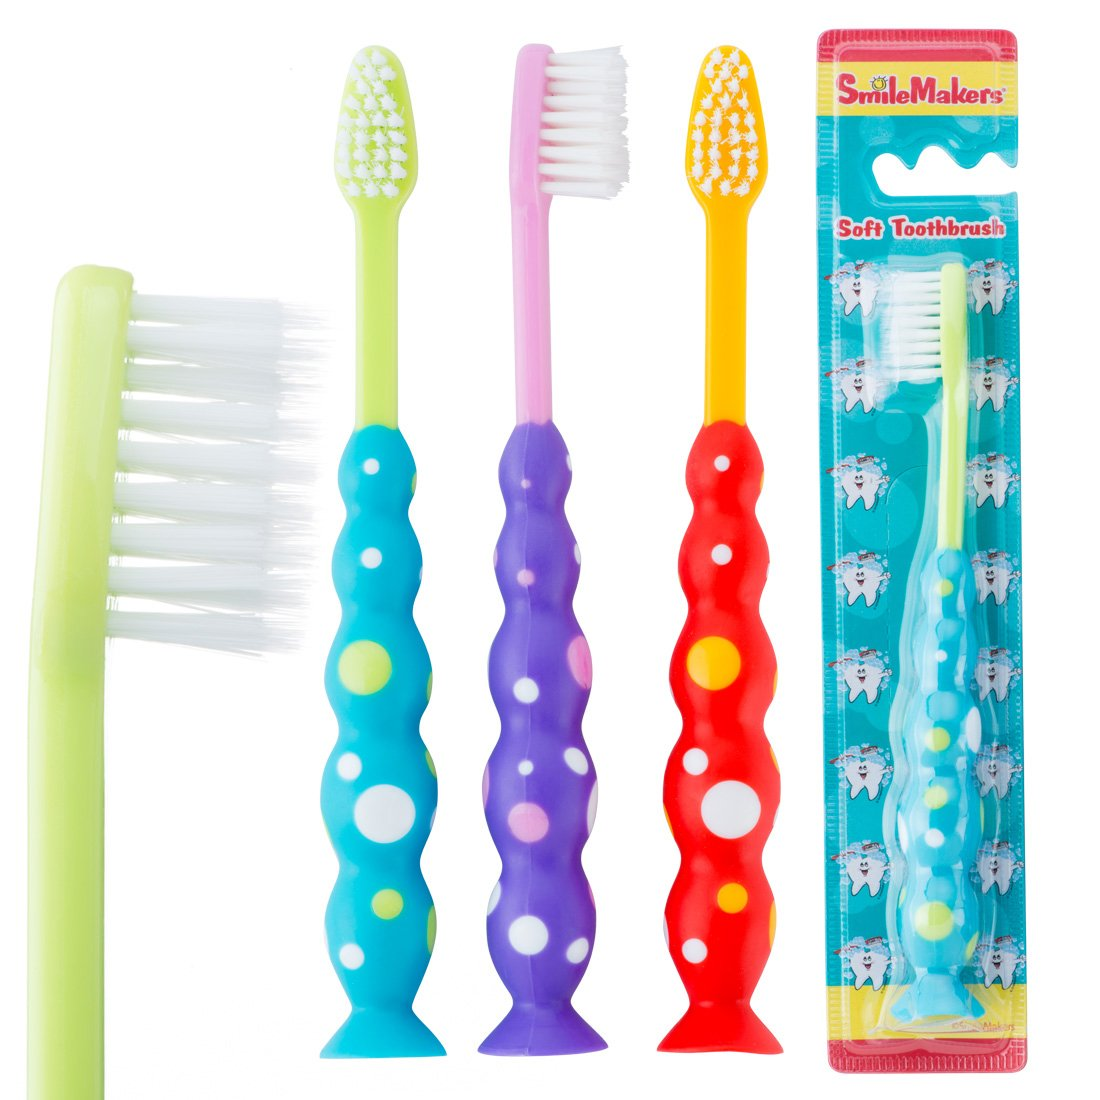 SmileCare Toddler Ultrafine Toothbrushes - Dental Hygiene Products - 48 per Pack by SmileMakers